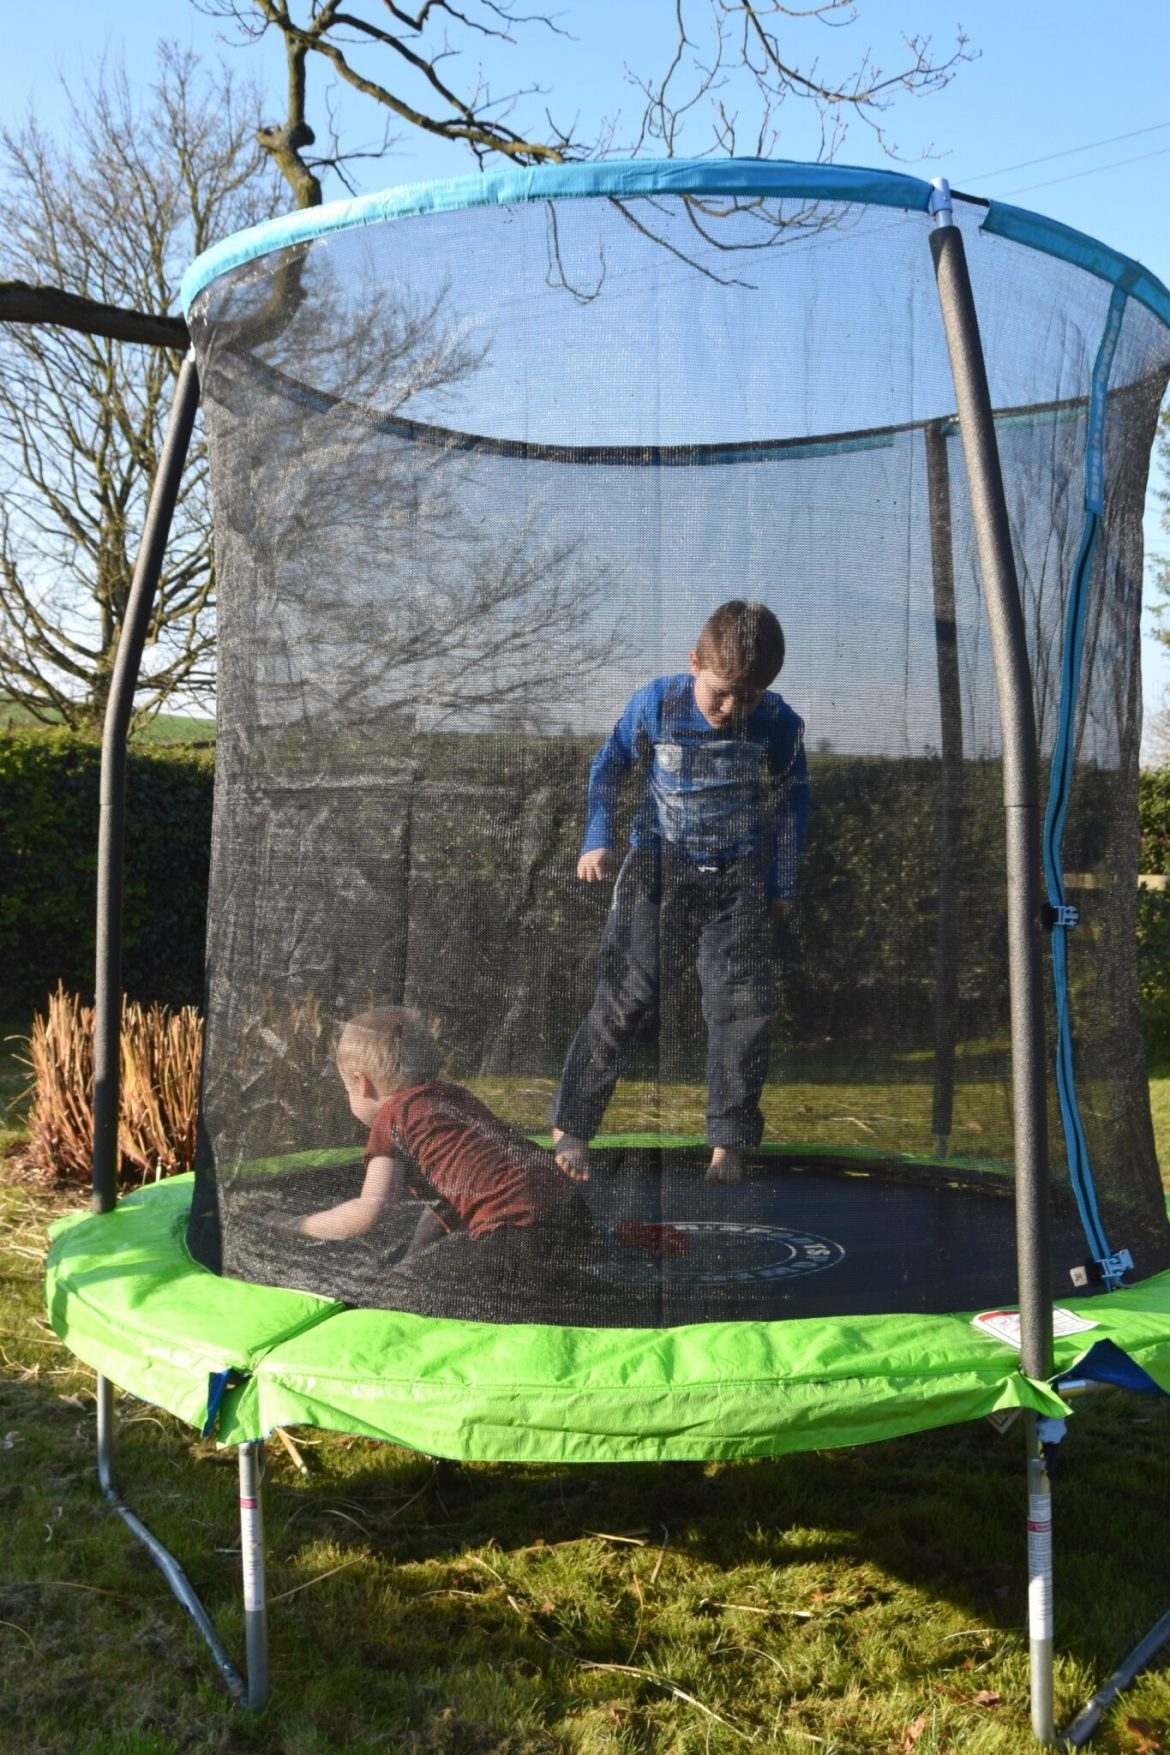 Playing outside on the trampoline. Home schooling activities